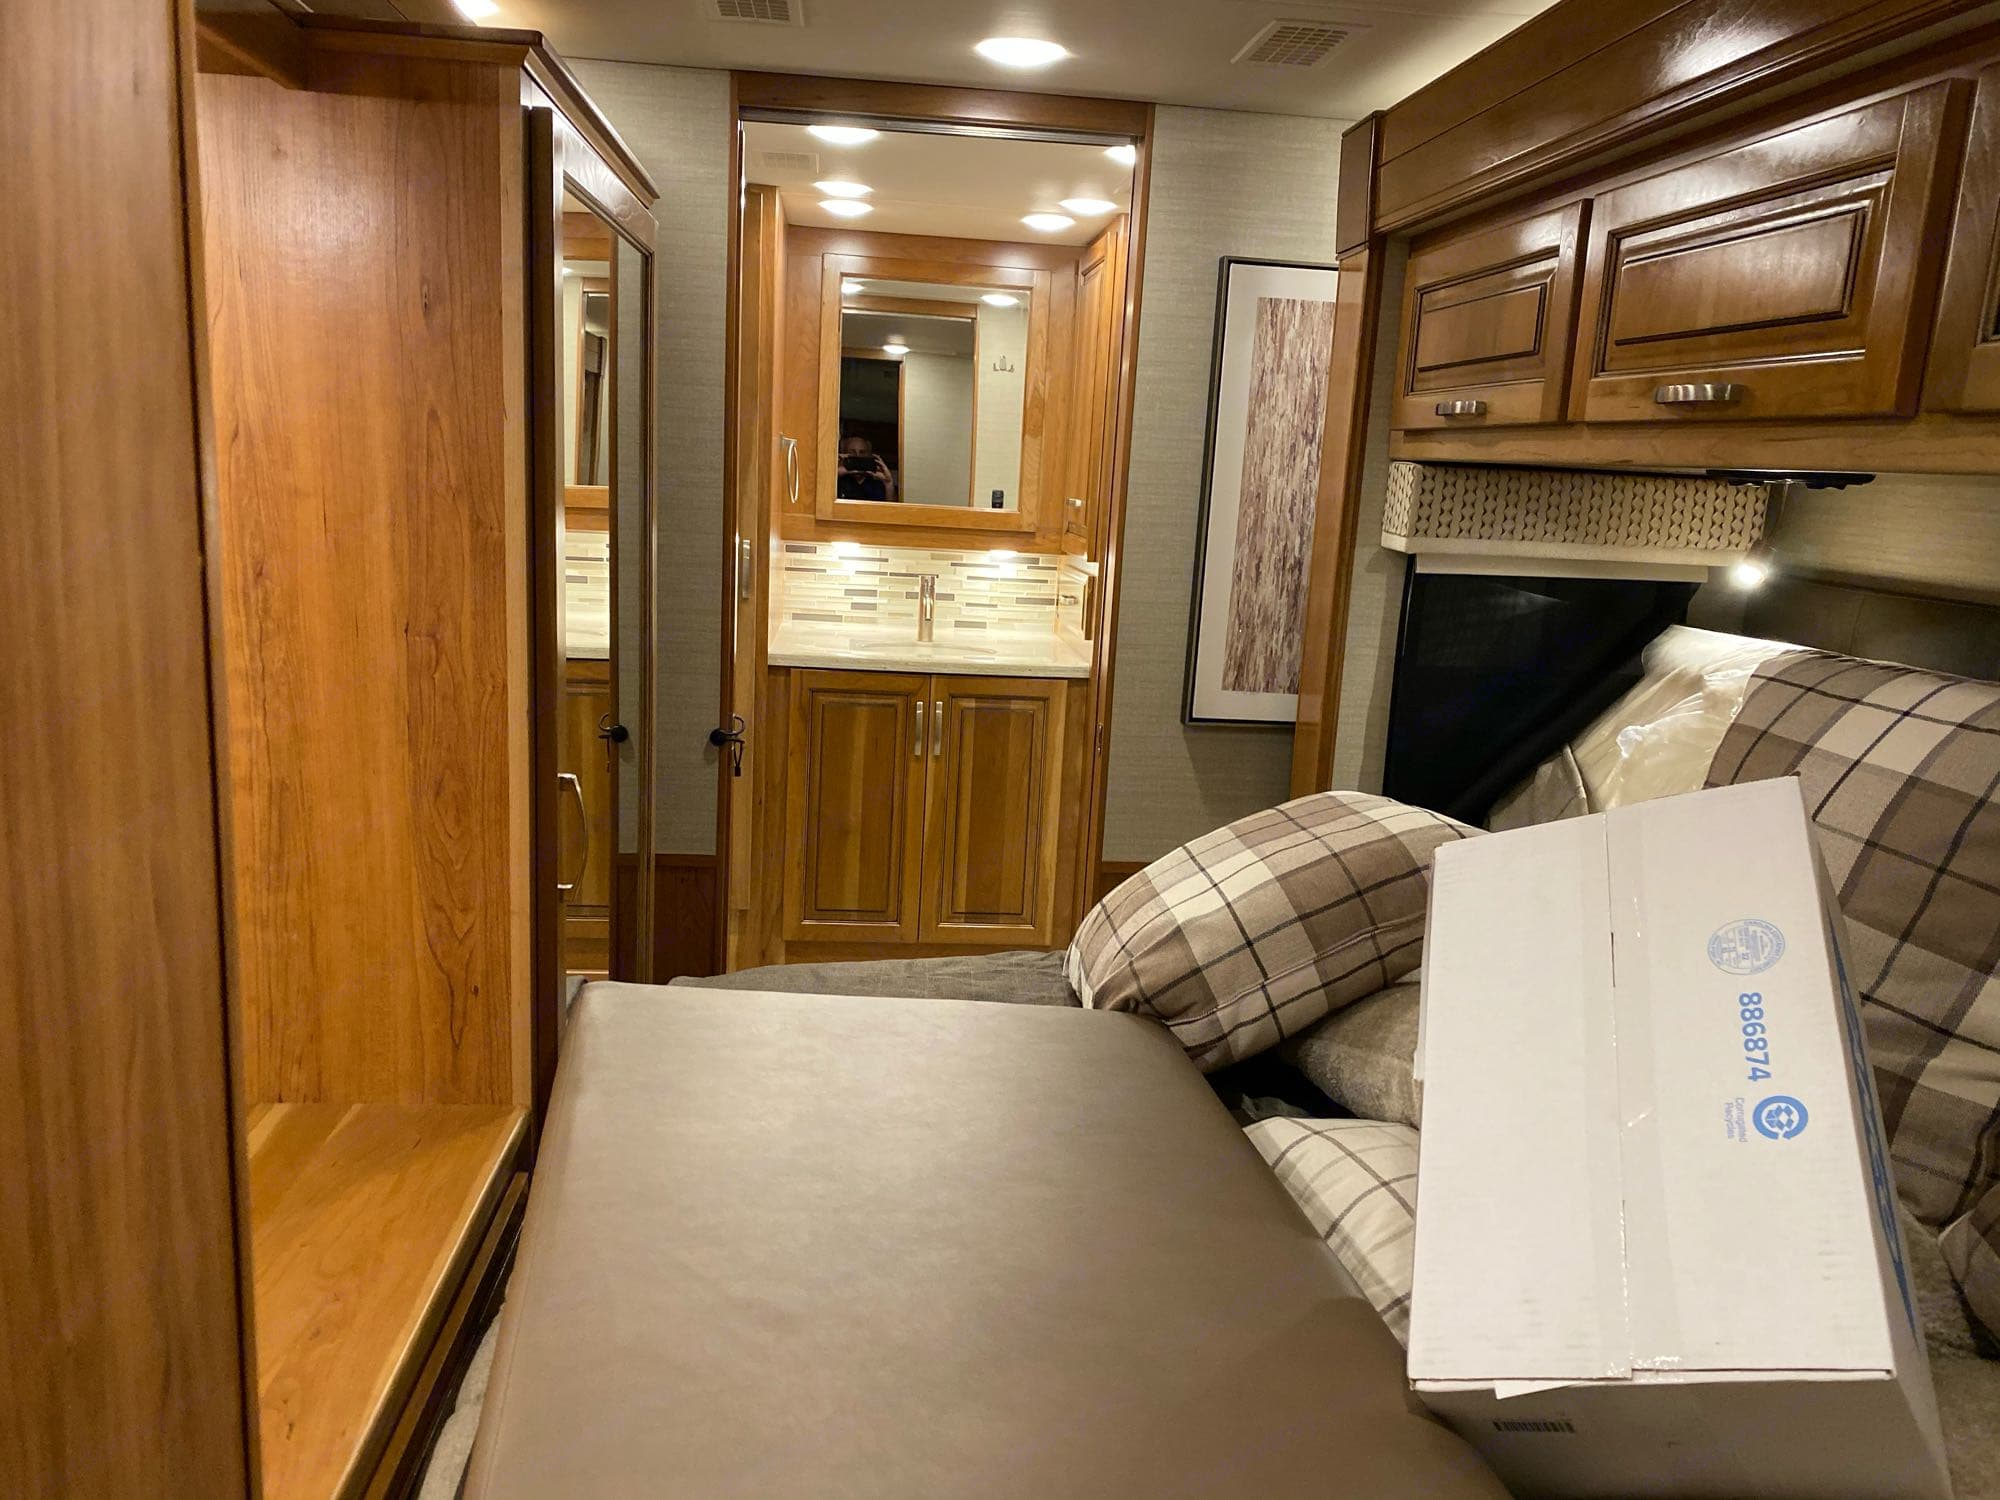 3 slides, bunk beds, king size bed in master, washer dryer and more. Entegra Coach Other 2019